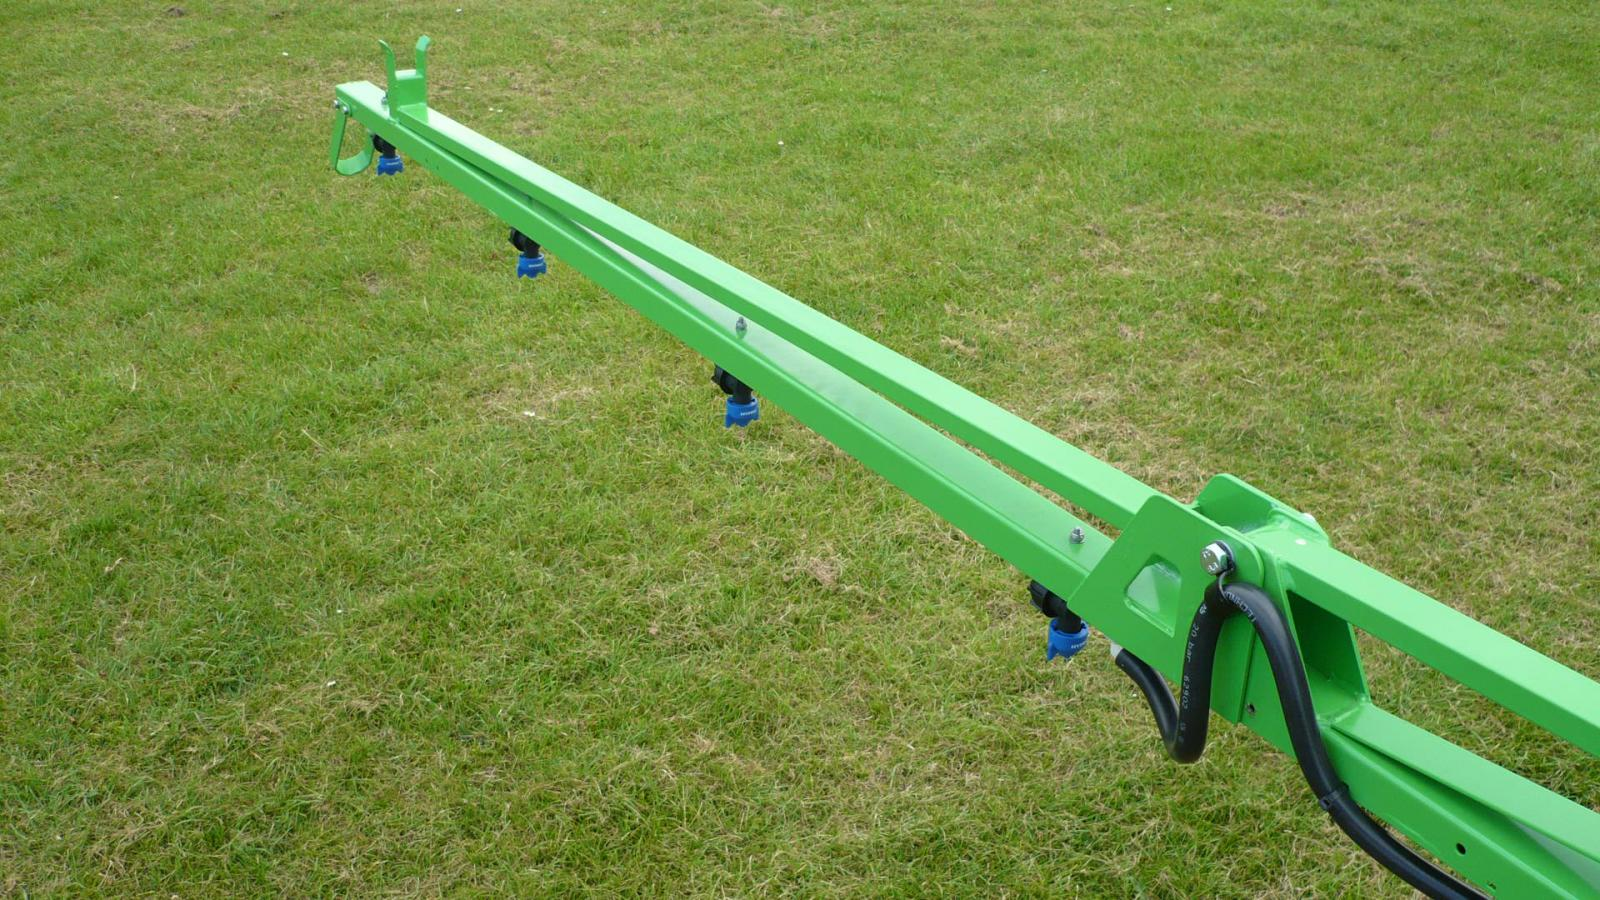 Optional boom extensions can take the spraying width to 10 metres on the AS200 STARGREEN Tractor Mounted Amenity Sprayer